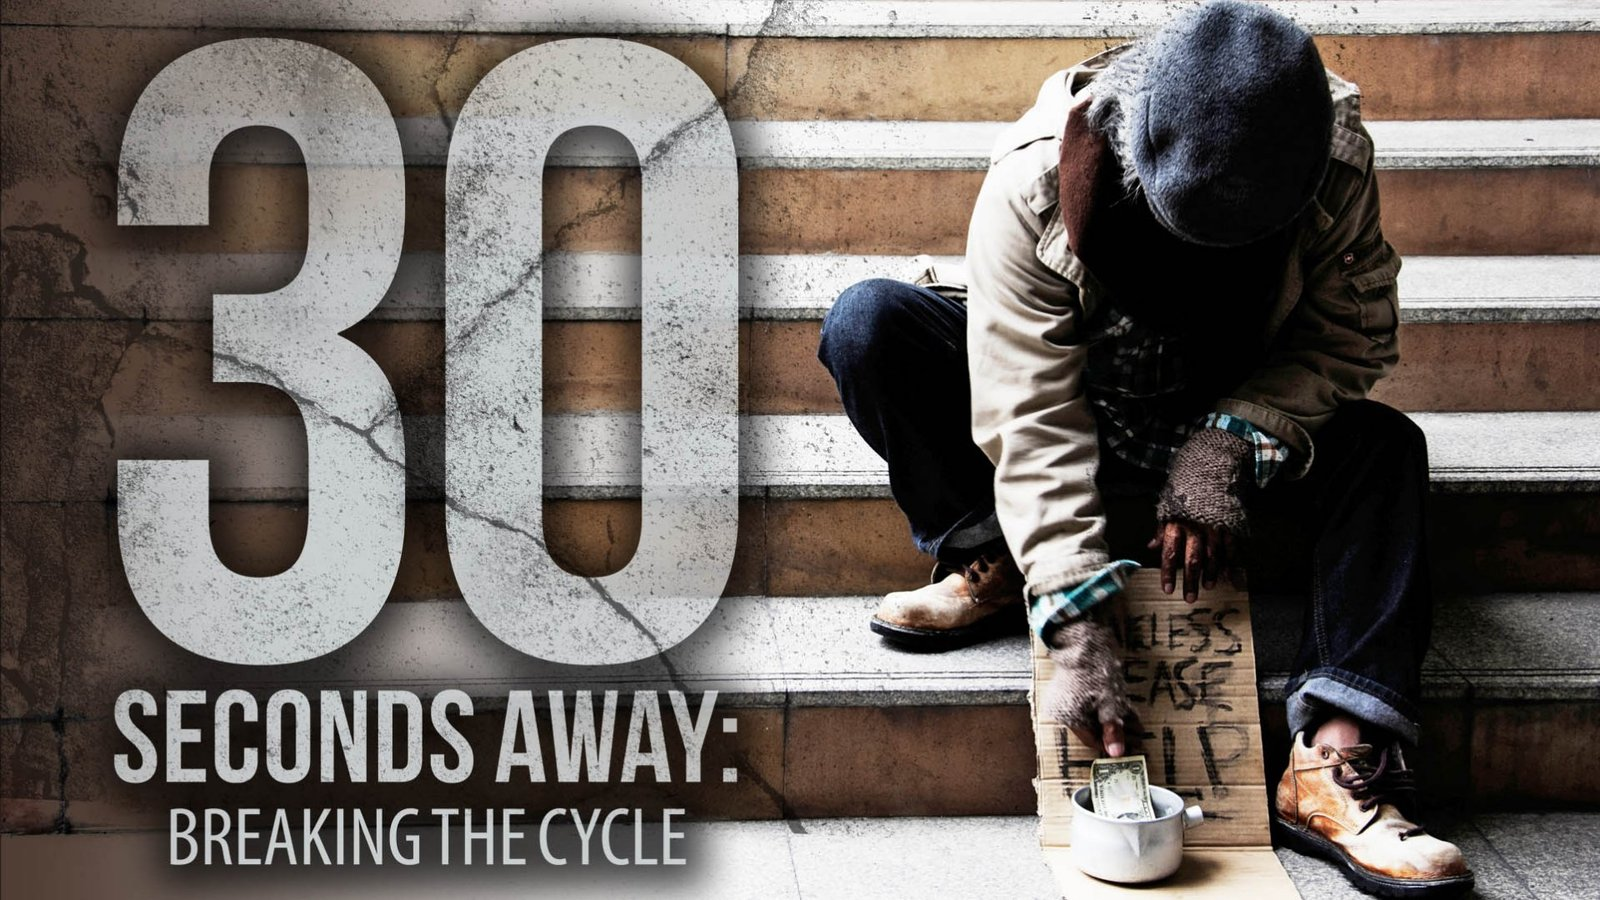 30 Seconds Away: Breaking the Cycle